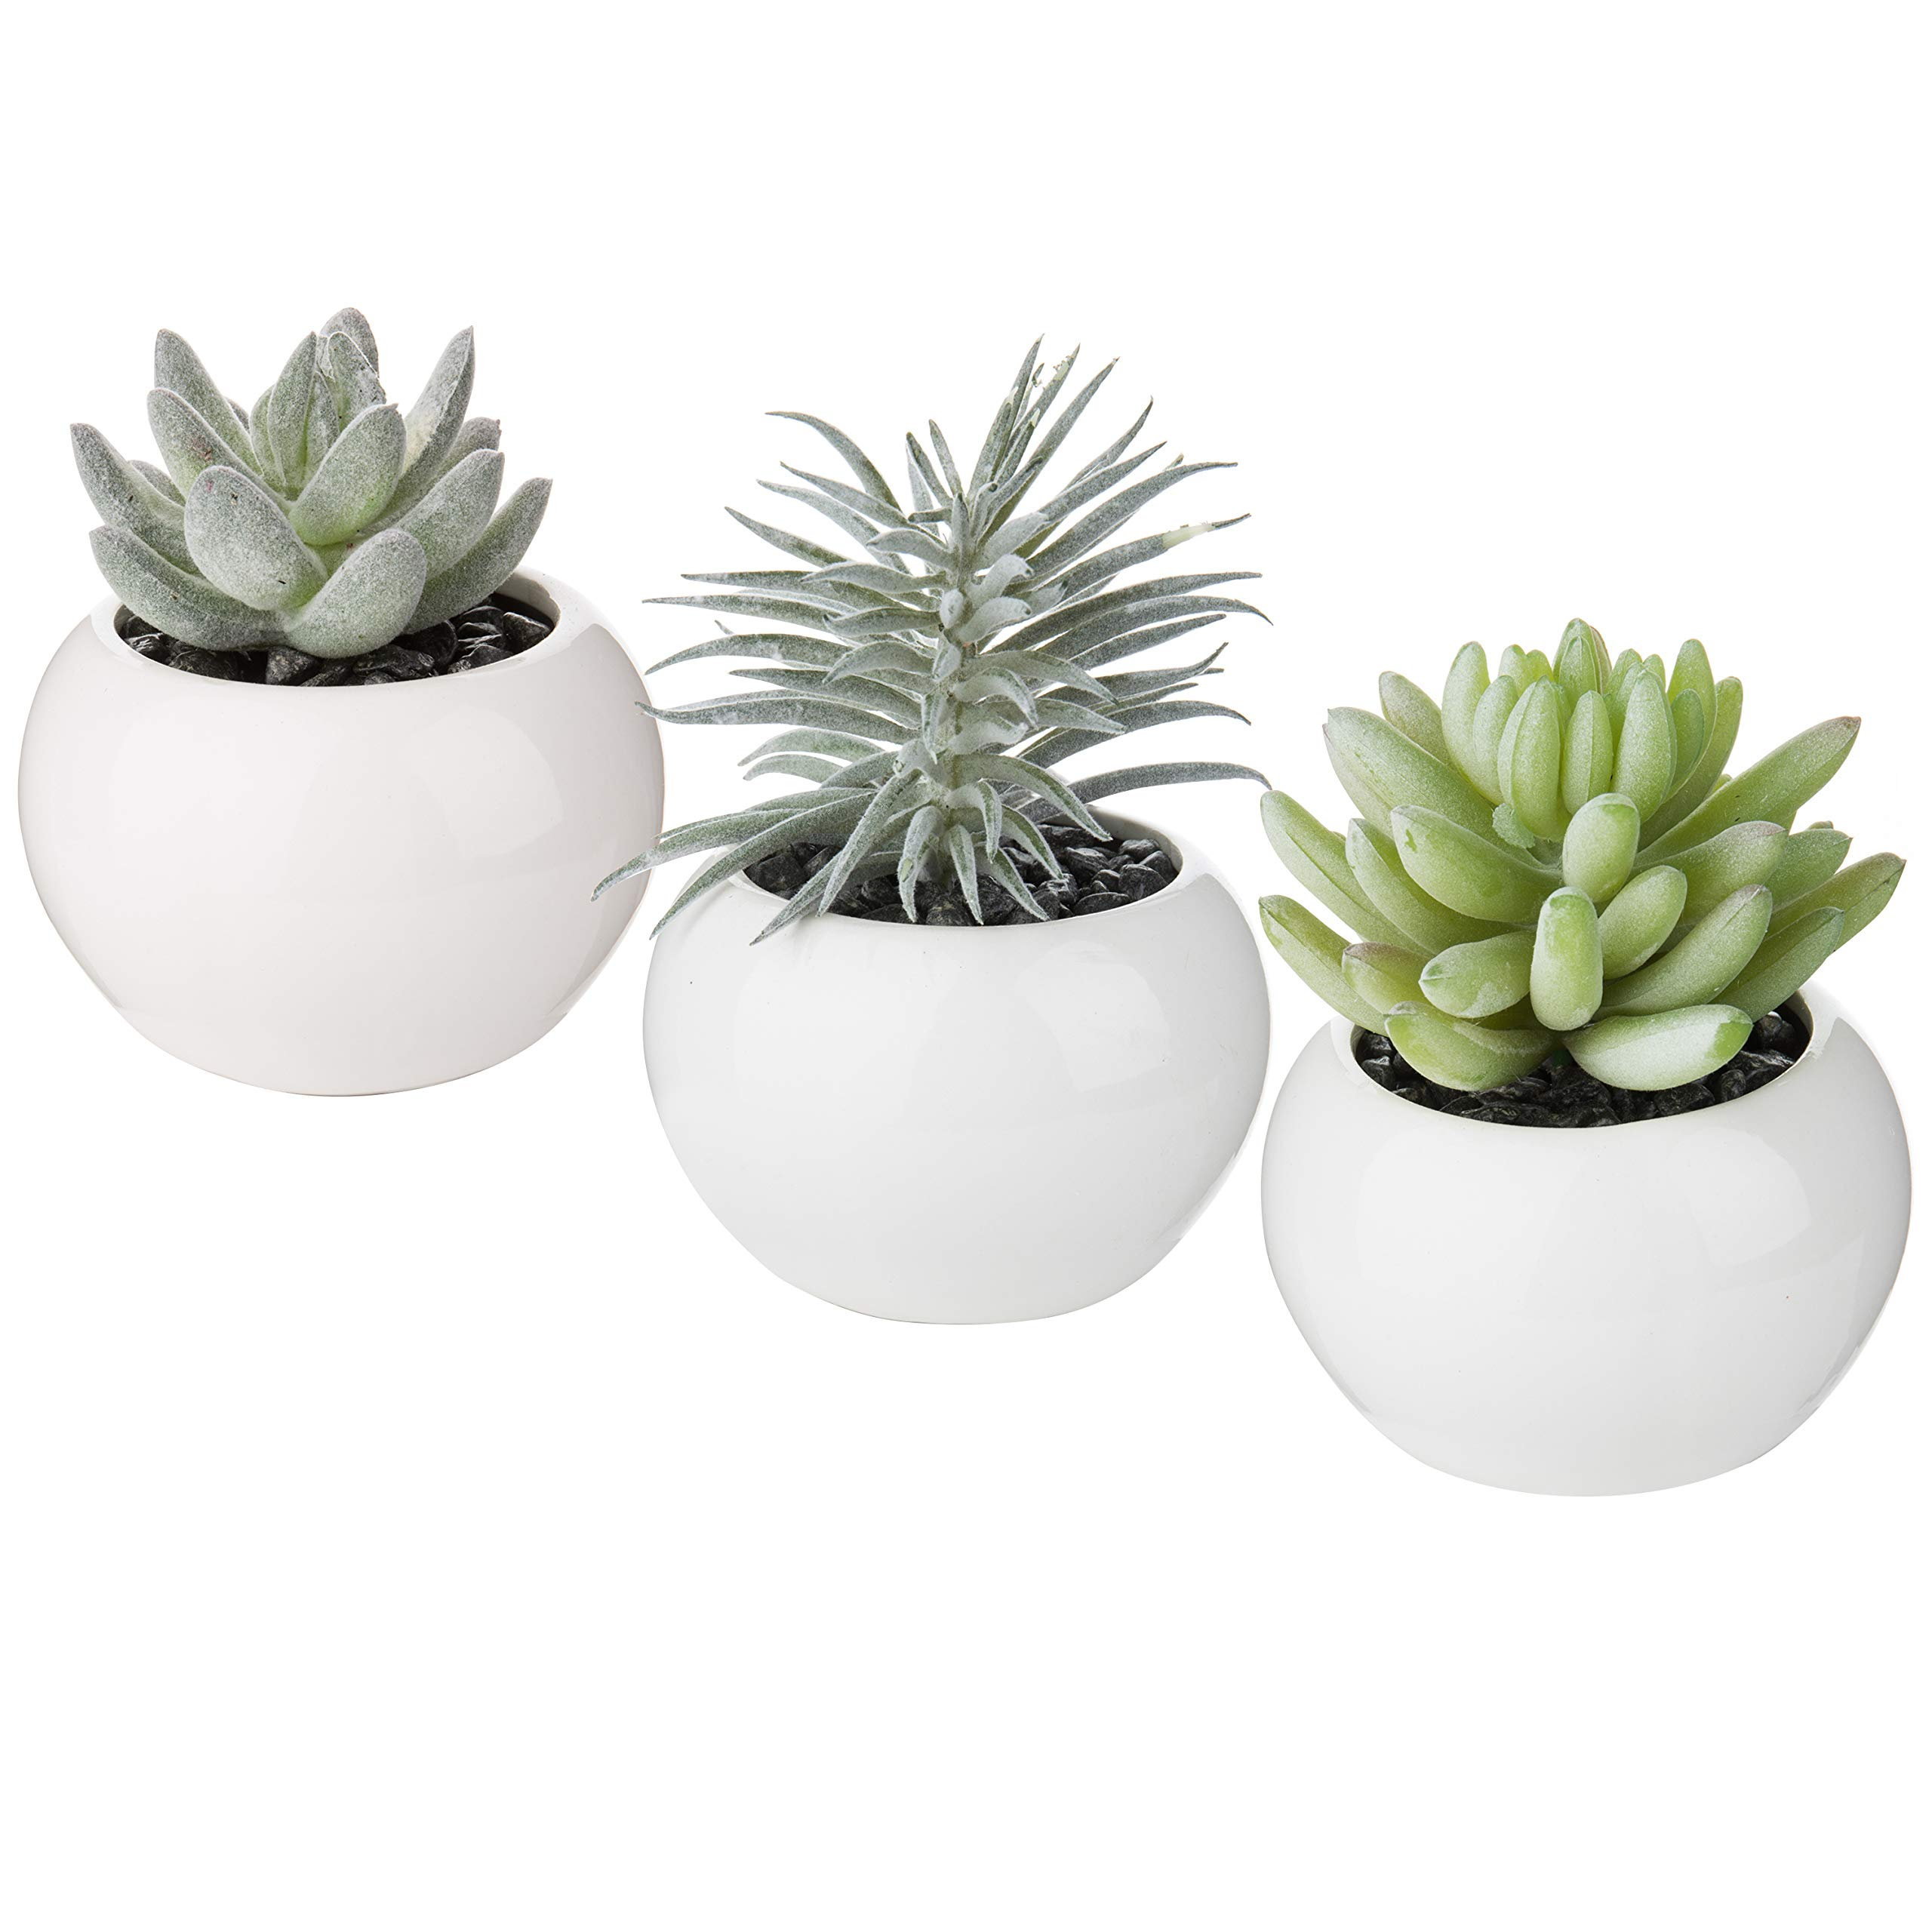 MyGift 4-Inch Artificial Succulent Plants in Mini White Ceramic Pots, Set of 3 by MyGift